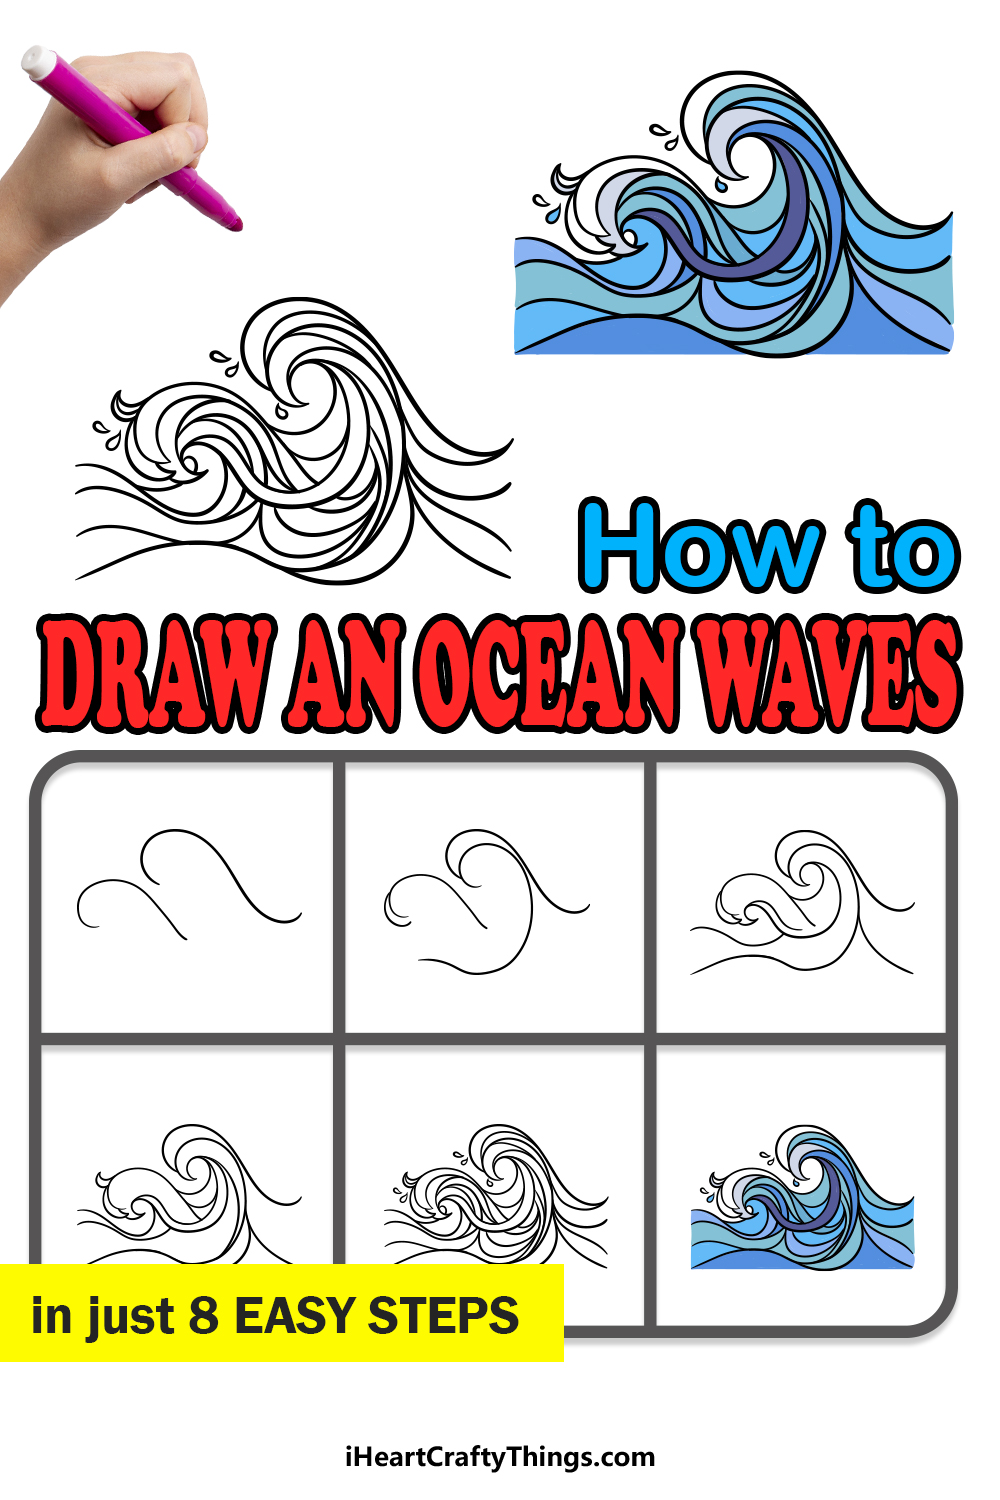 how to draw ocean waves in 8 easy steps